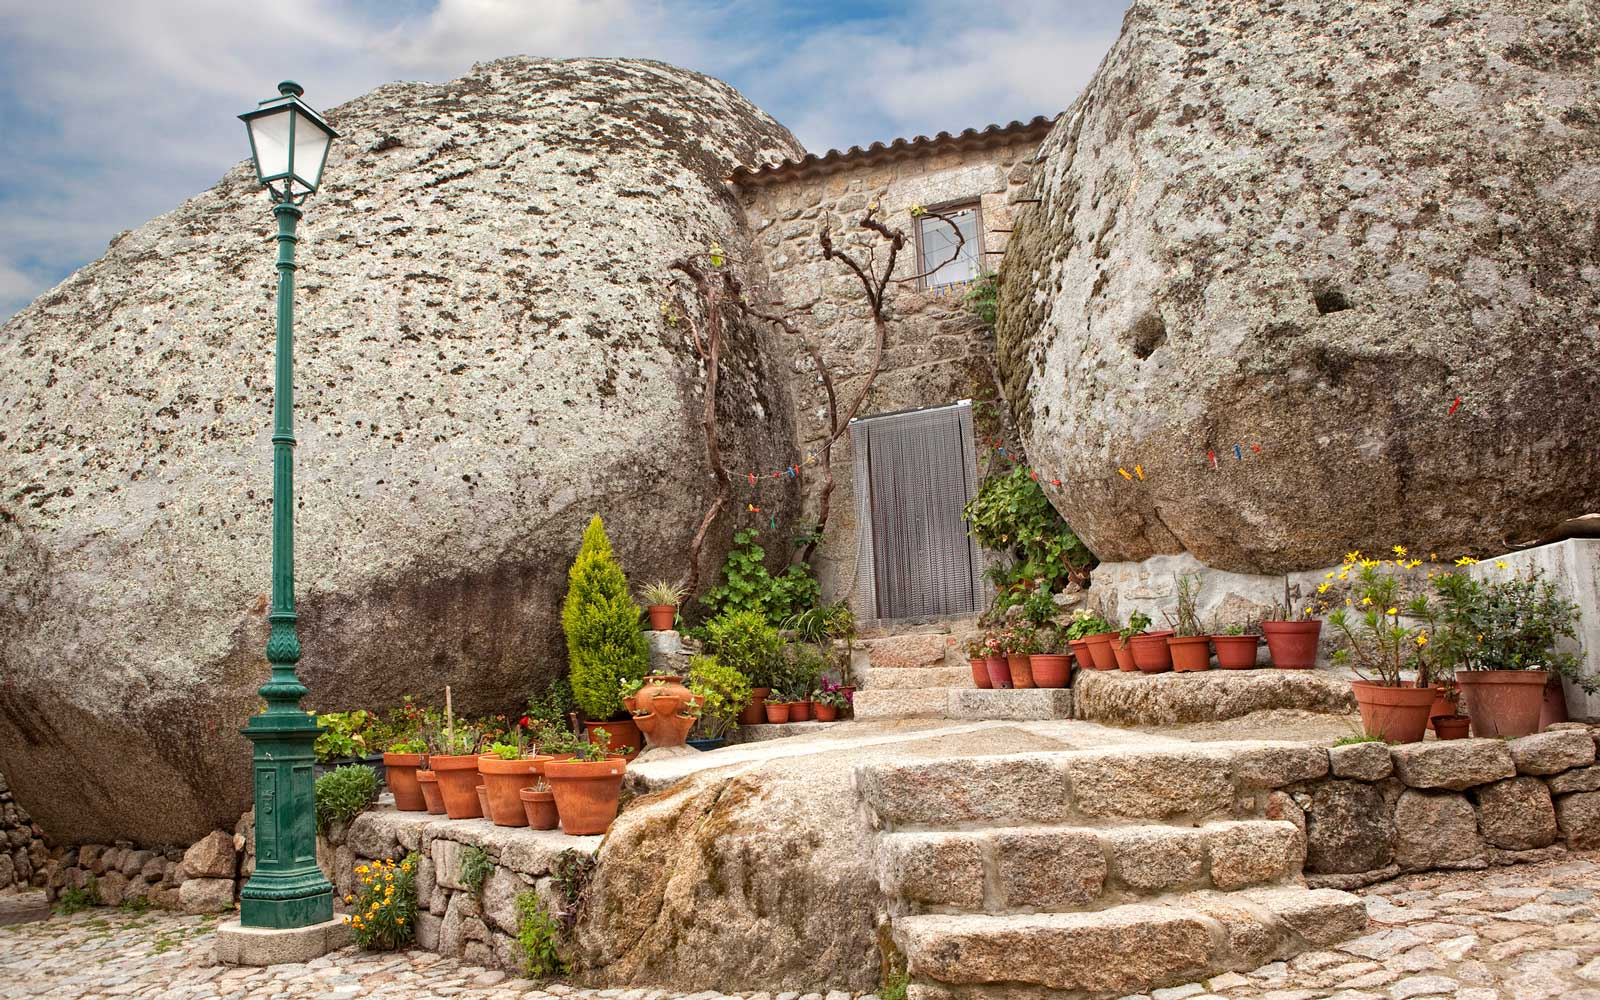 These Houses in Portugal Are Built Into Giant Boulders